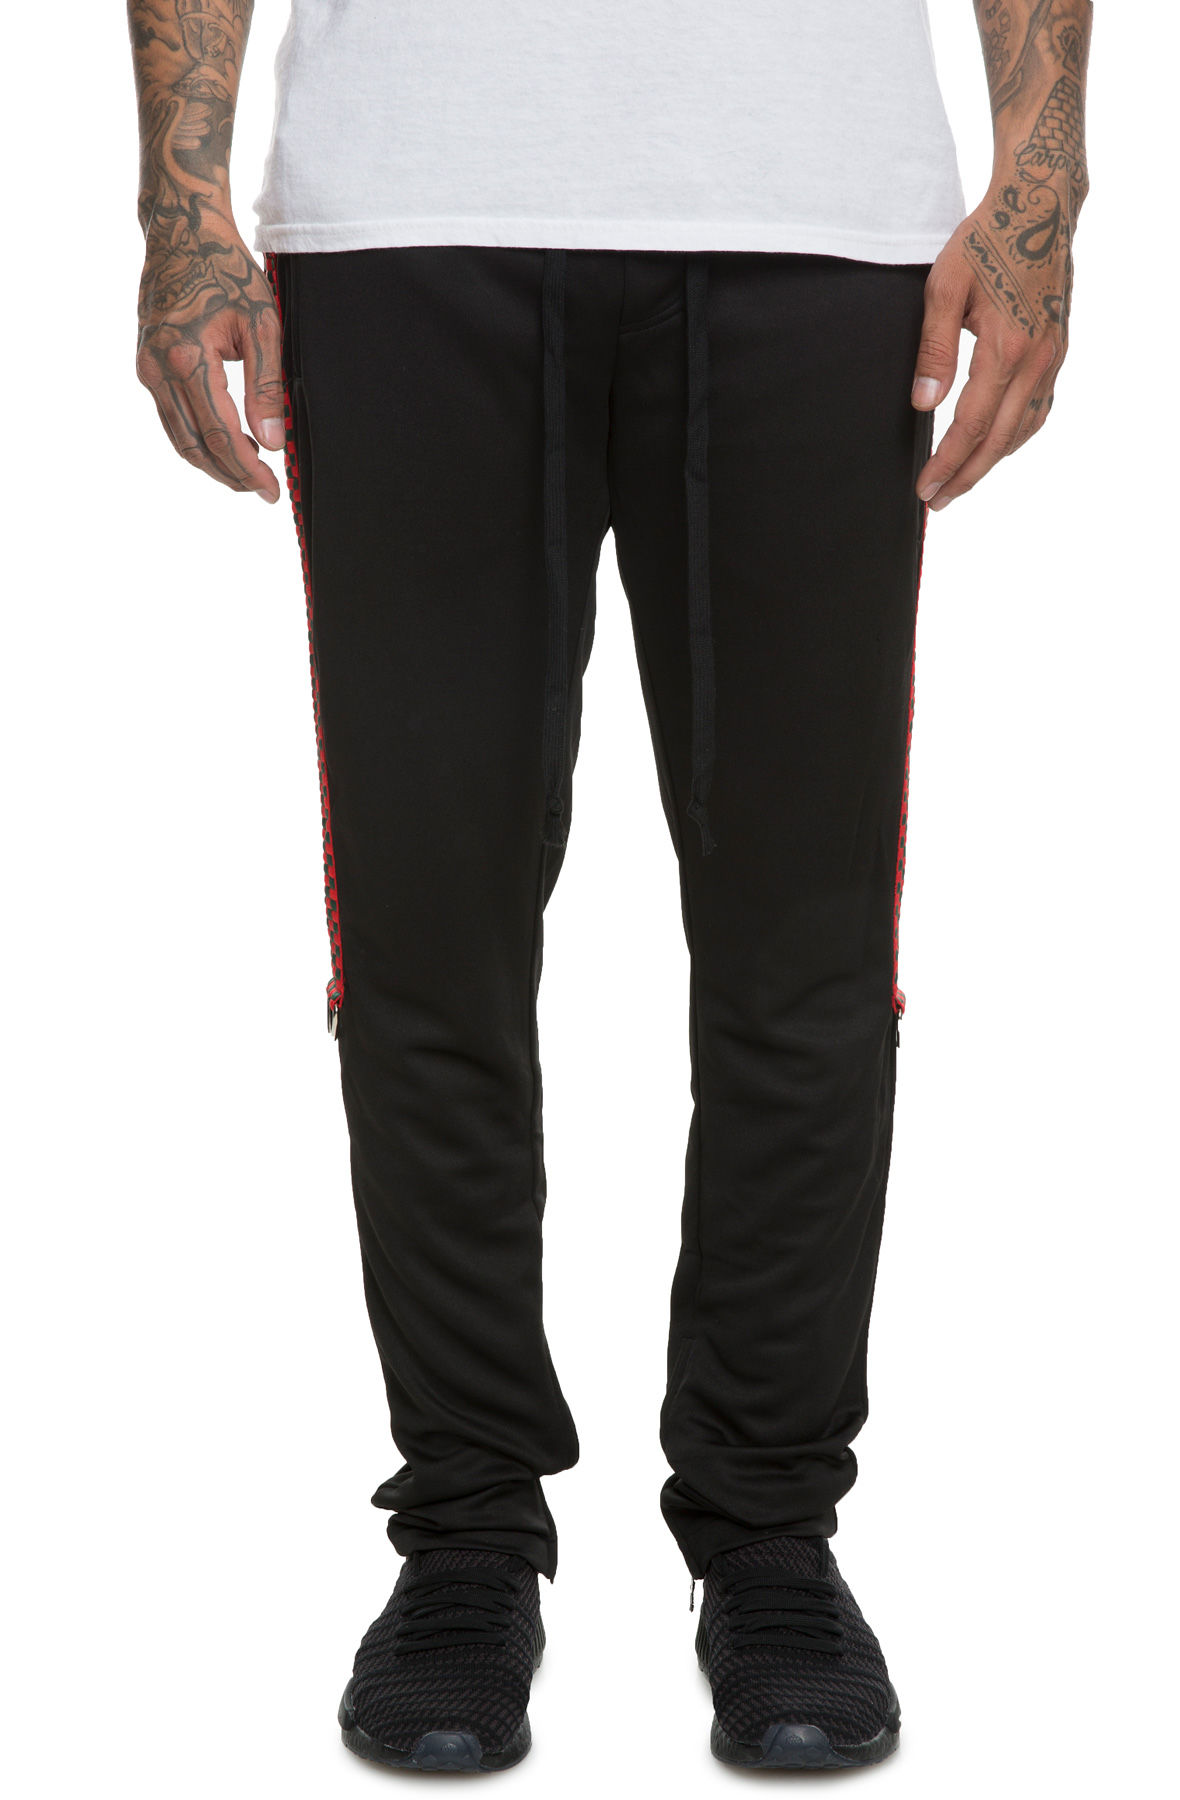 Image of The Geechi Weave Track Pants in Black